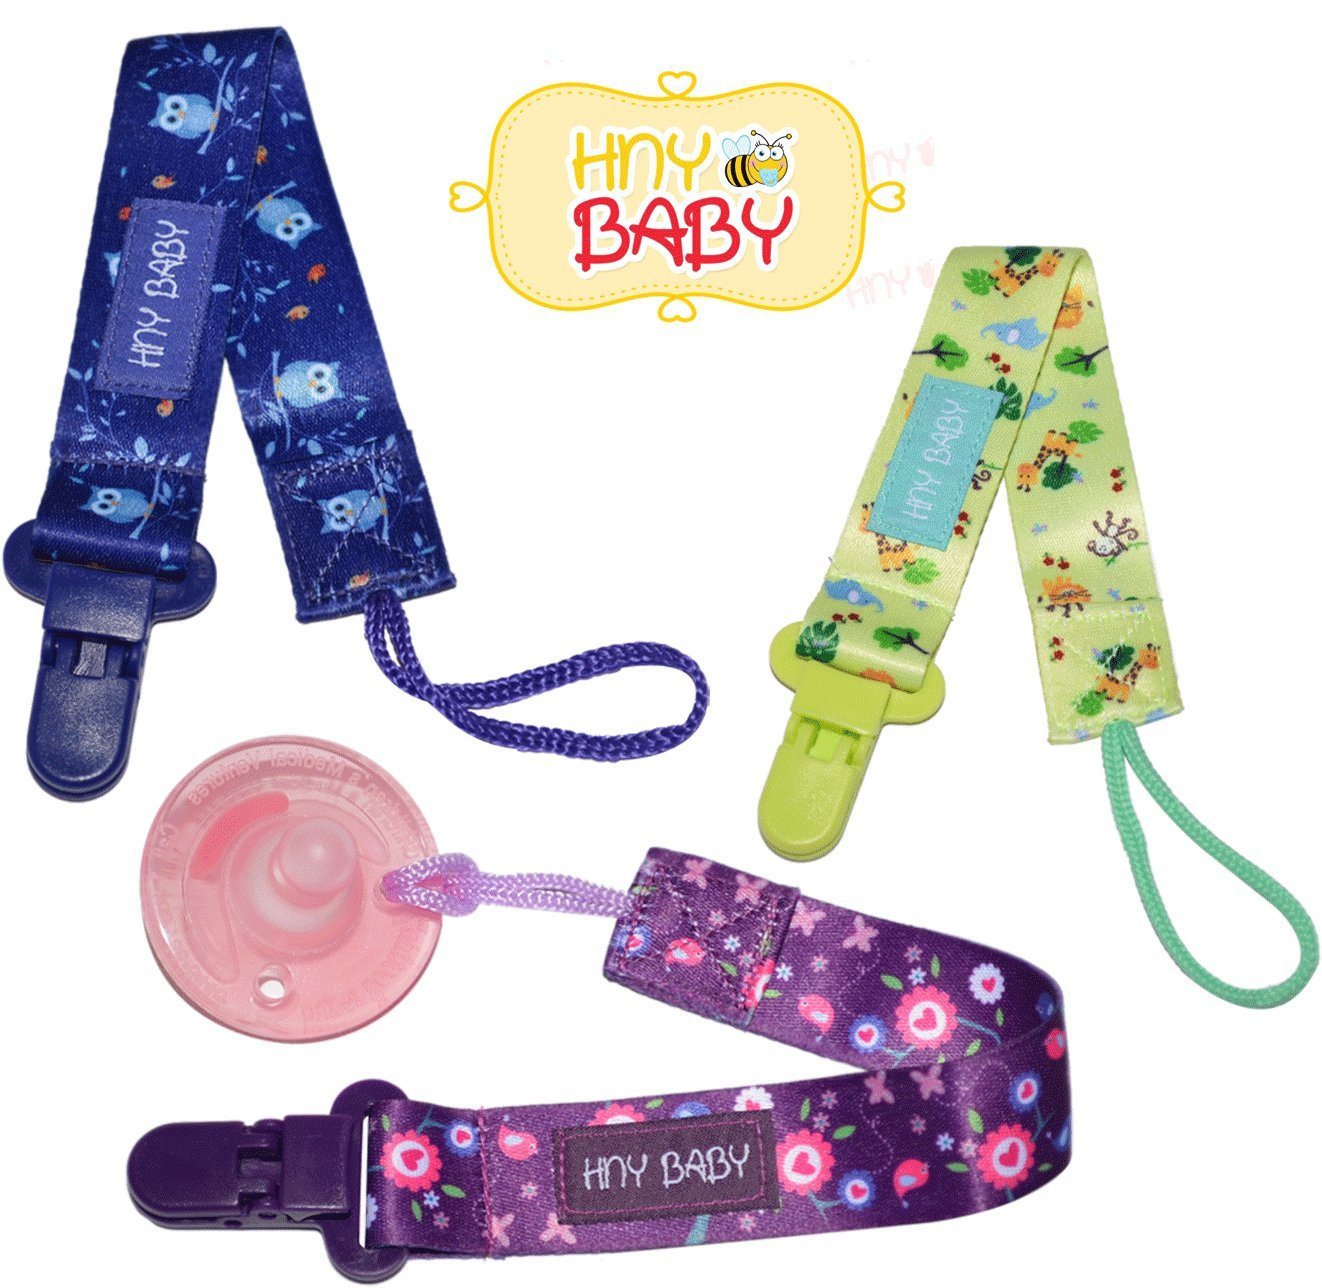 HnyBaby Pacifier Holder with Plastic Clip Universal fit to Pacifiers Soother Pacifier Leash Teether (Flowers)